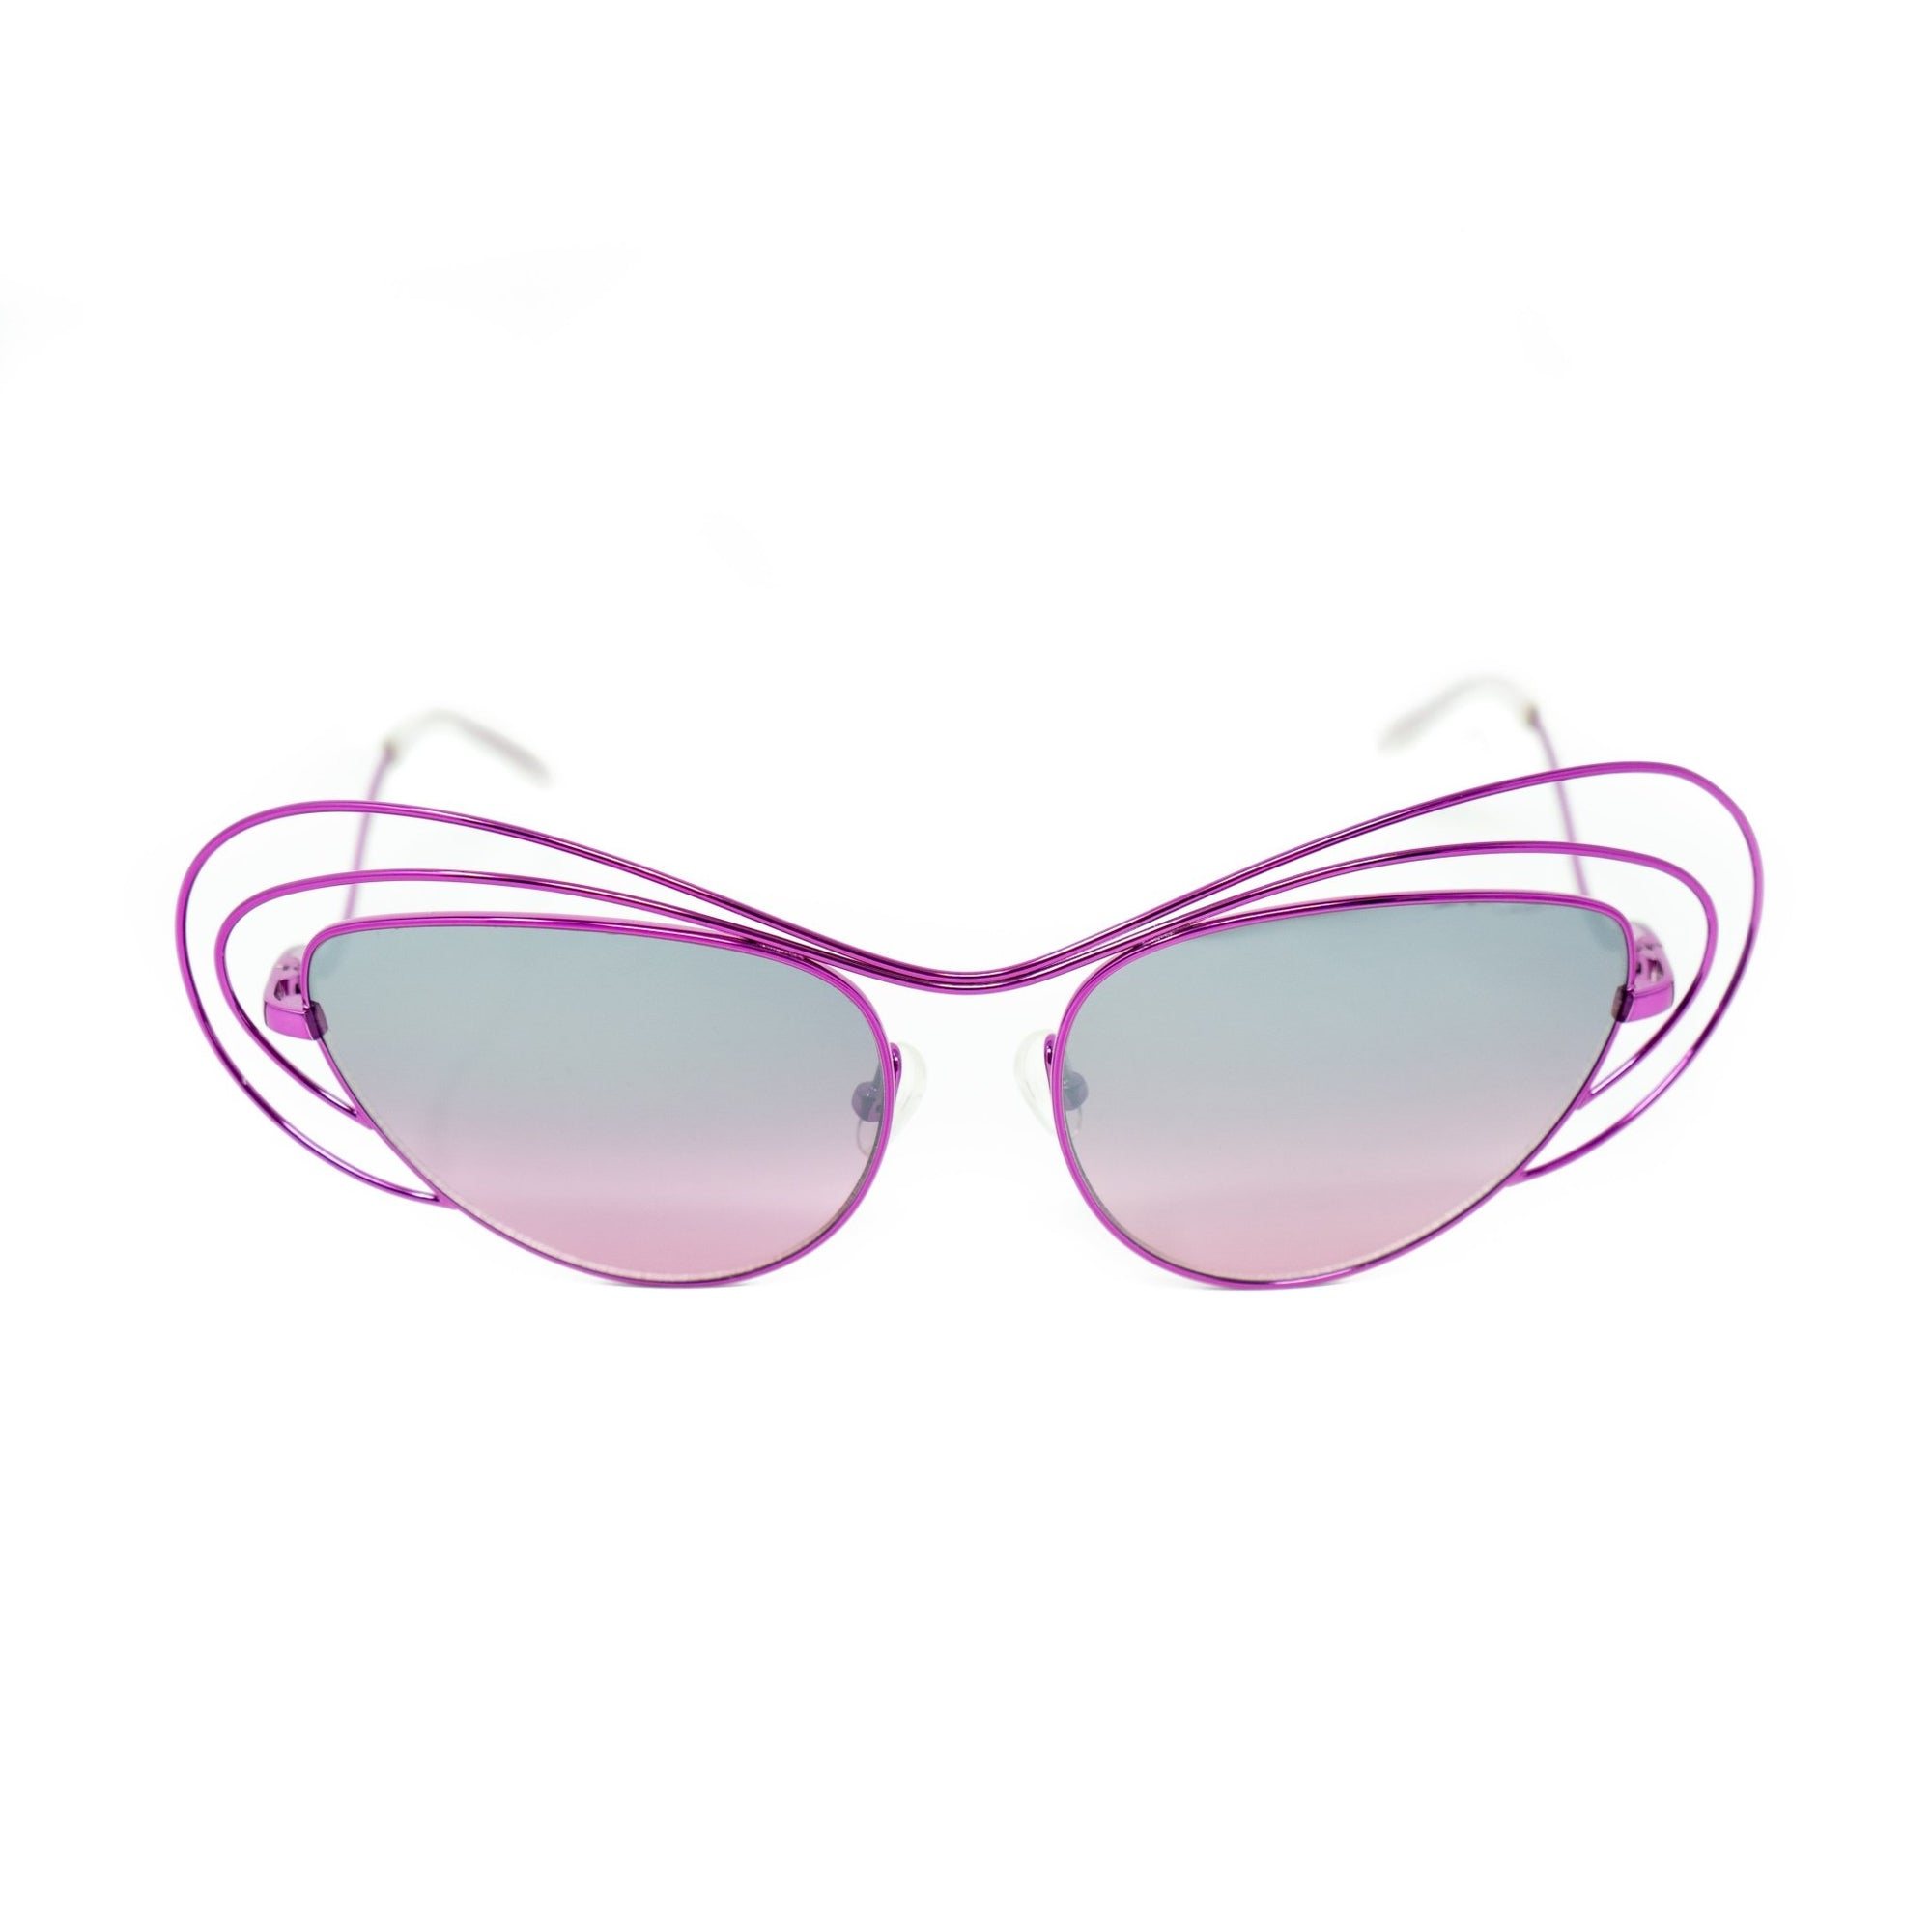 Erdem Women Sunglasses Special Frame Purple with Pink/Grey Graduated Mirrored Lenses Category 3 - EDM2C1SUN - Watches & Crystals